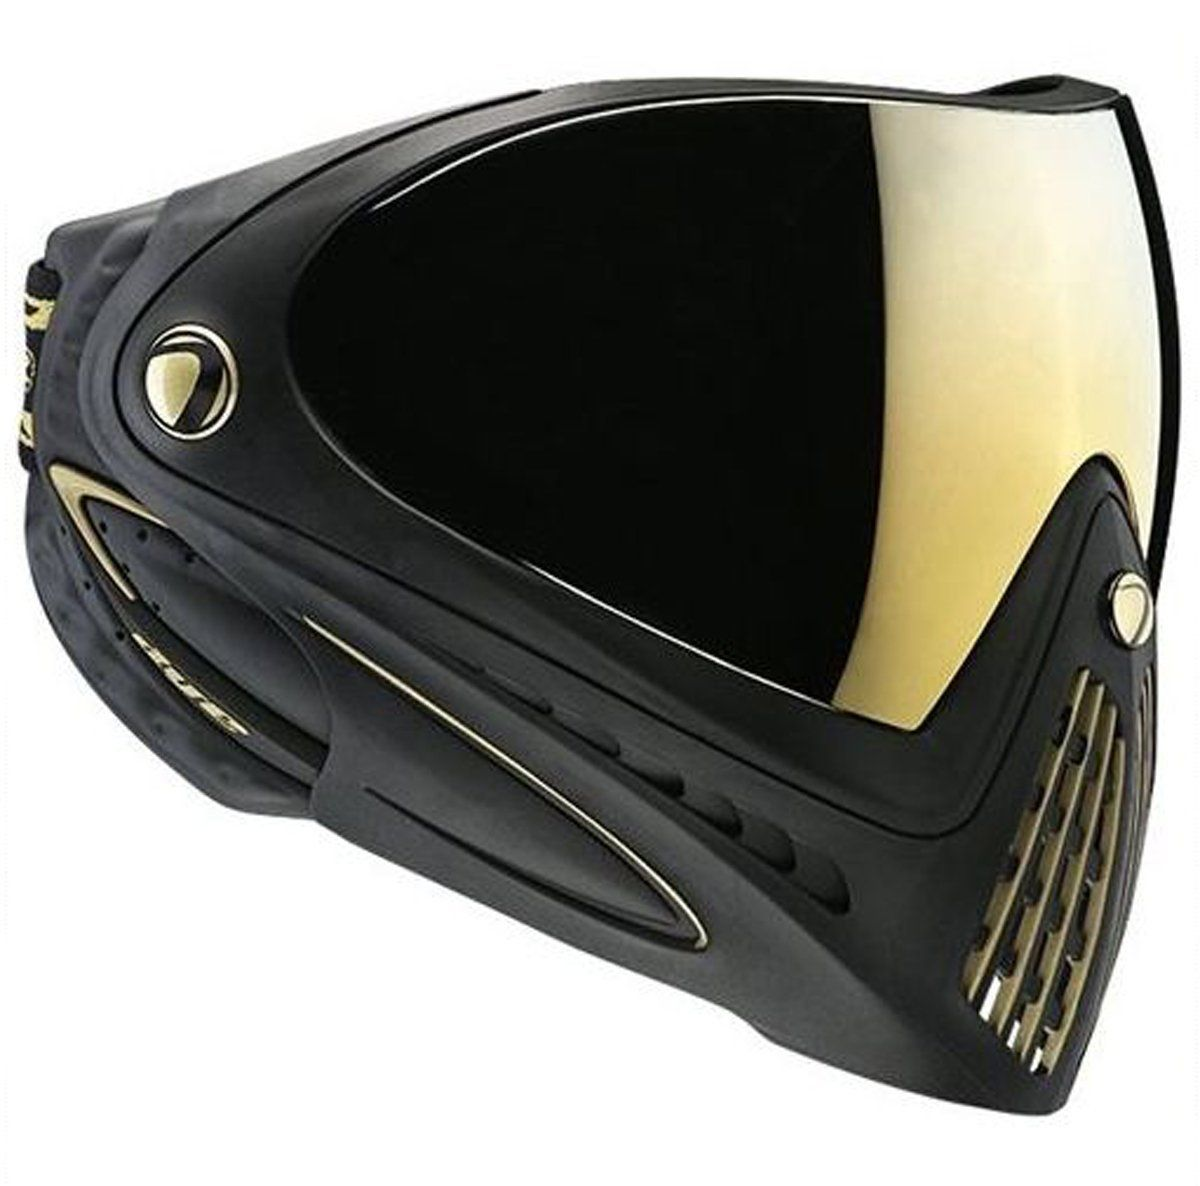 Amazon.com : Dye I4 Special Edition Paintball Mask - Black/Gold ...